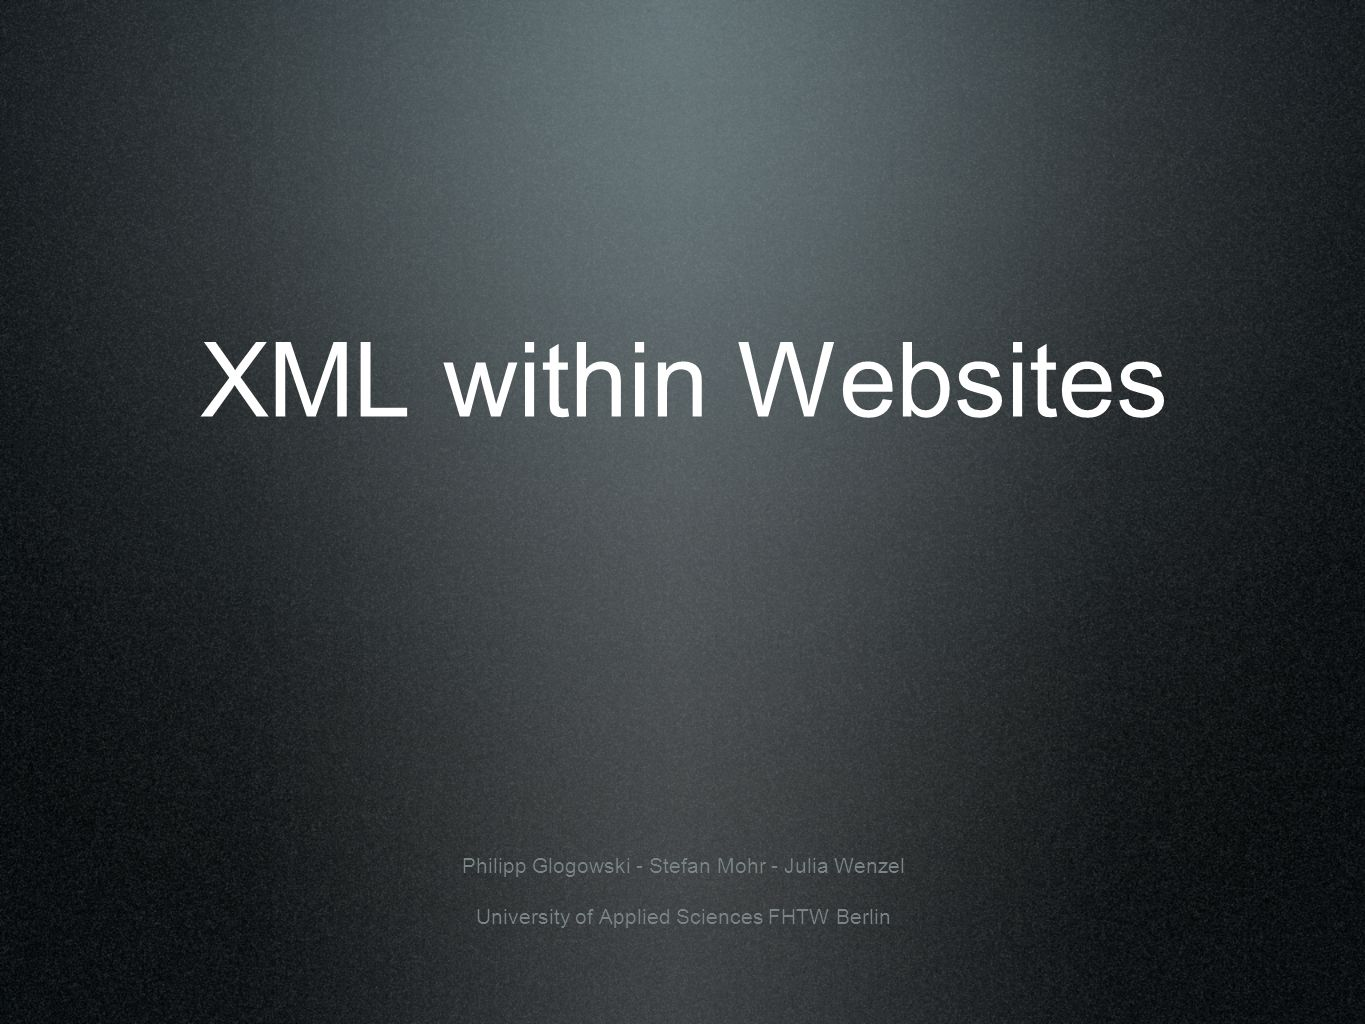 Index 1. Introduction 2. Overview about XML 3. Website vs. PDA-View with an example 4. Conclusions